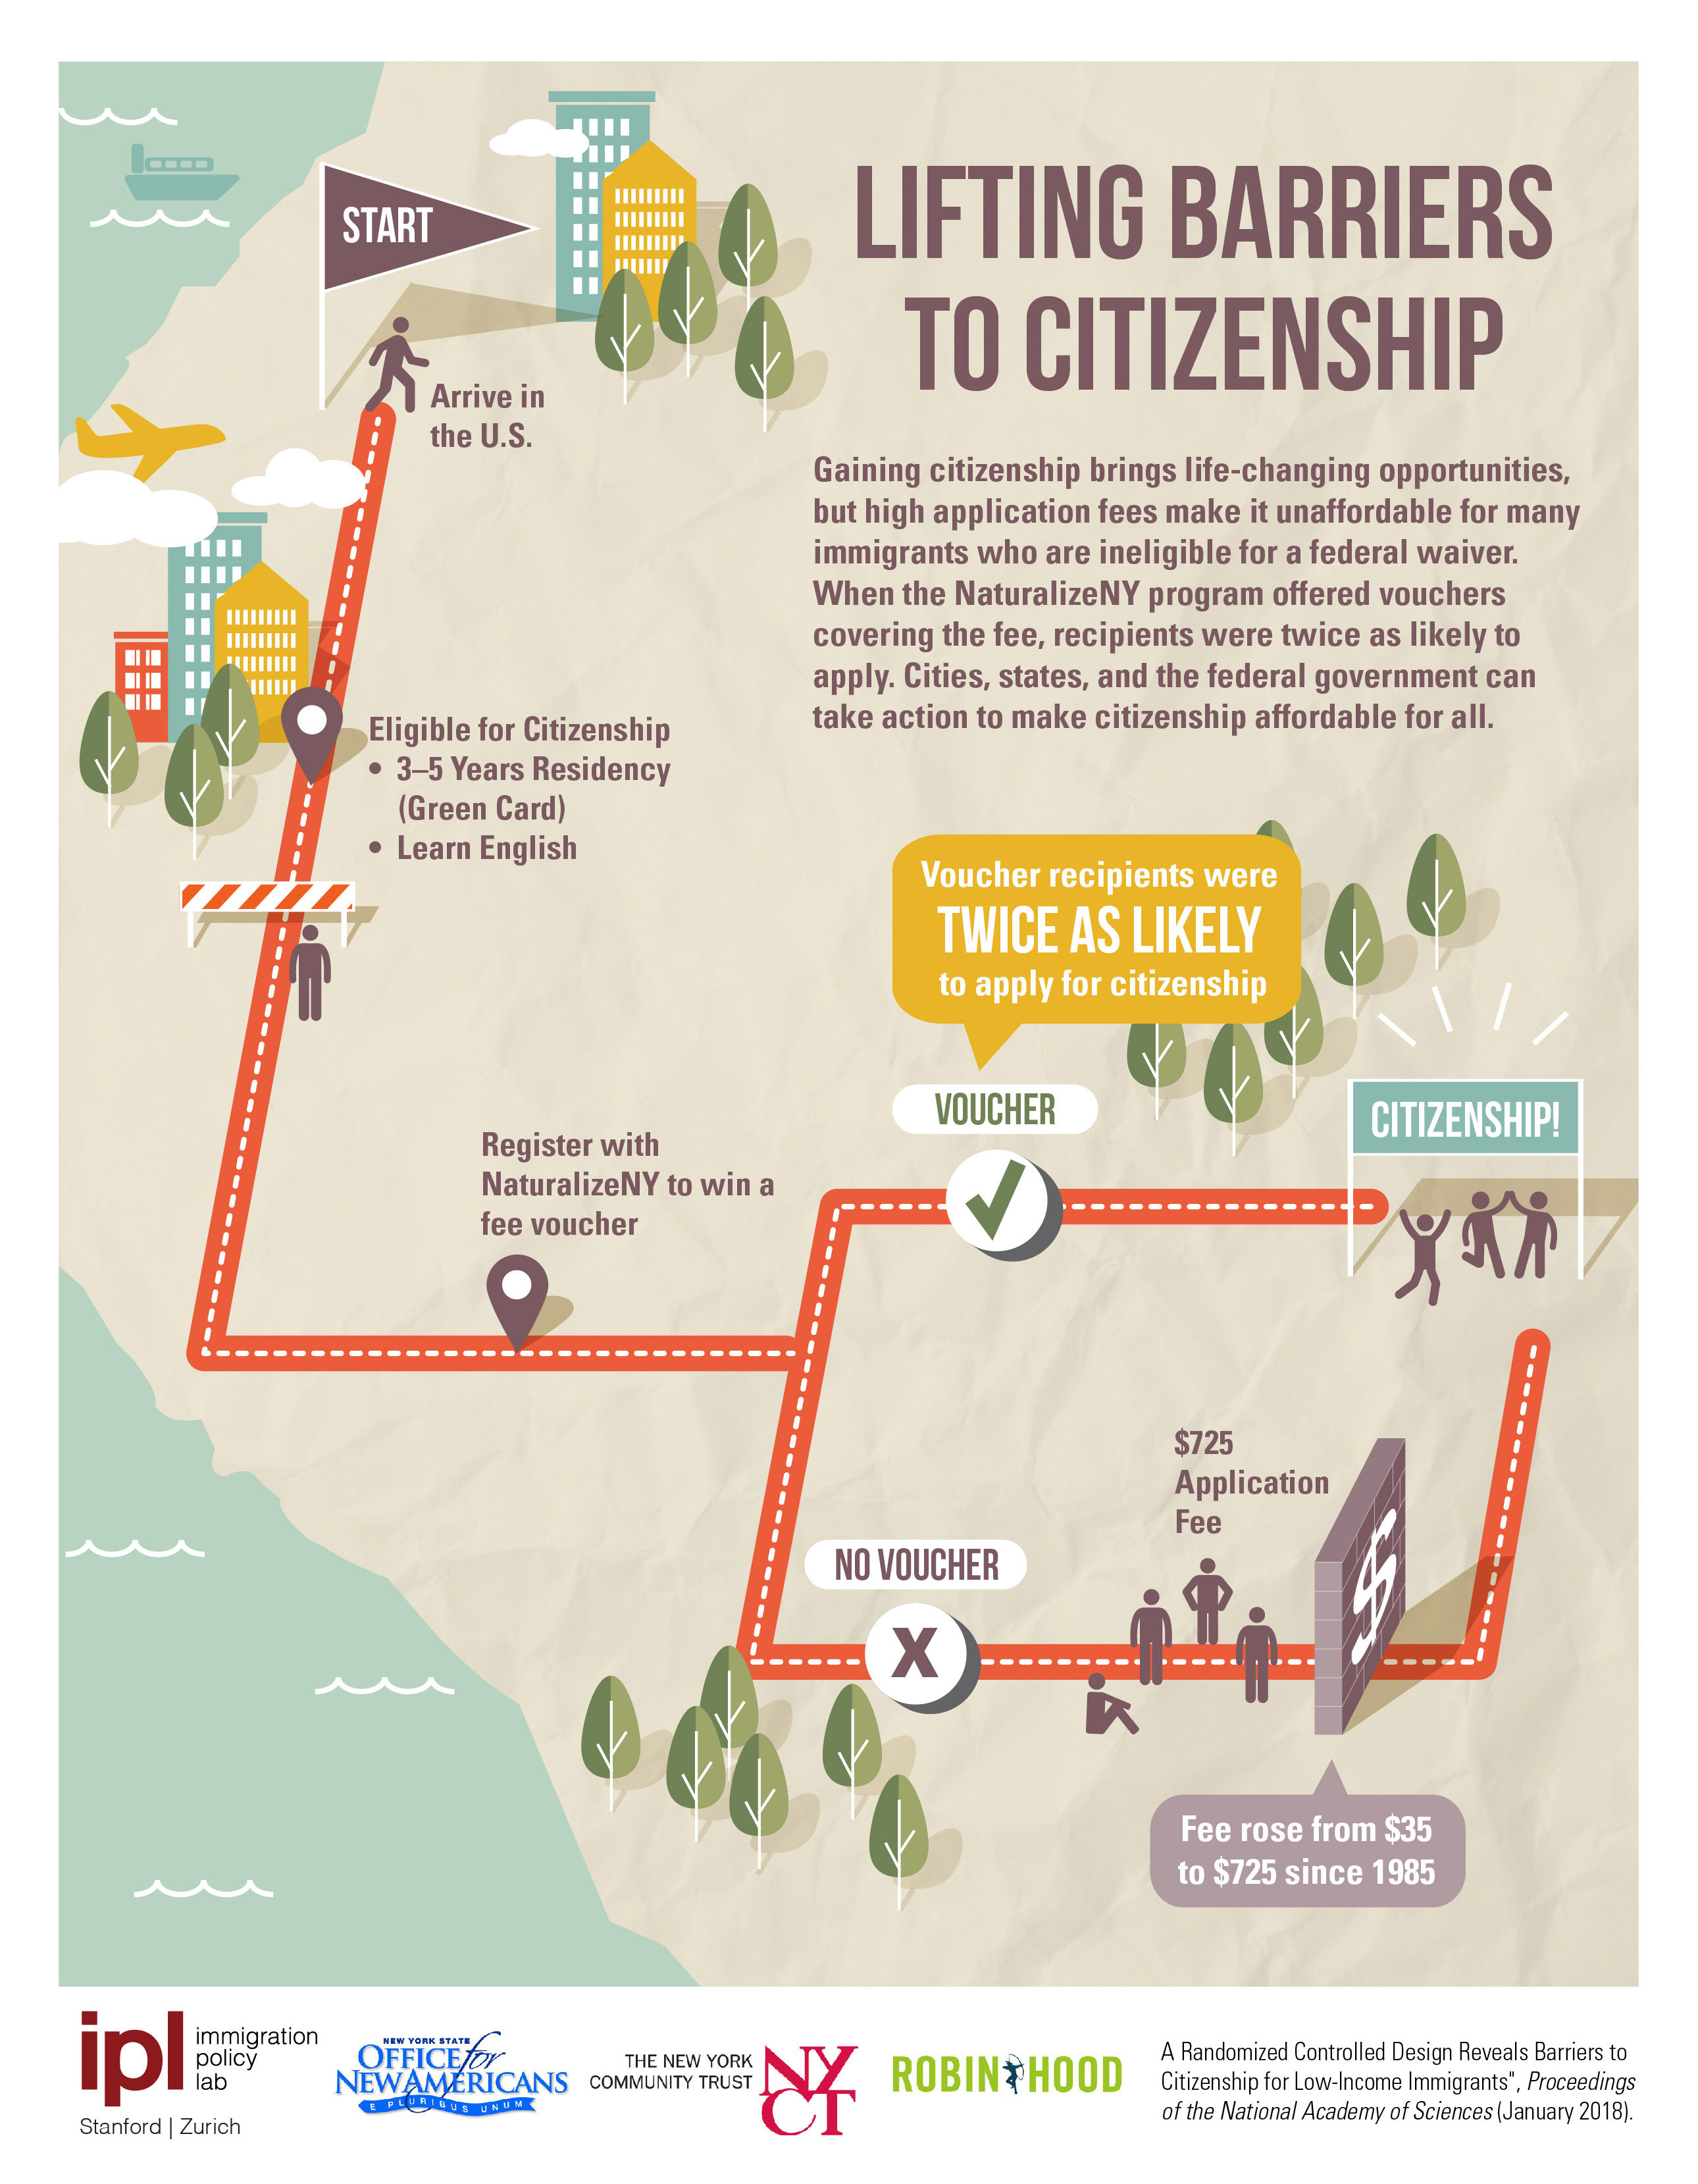 Lifting barriers to citizenship for low-income immigrants